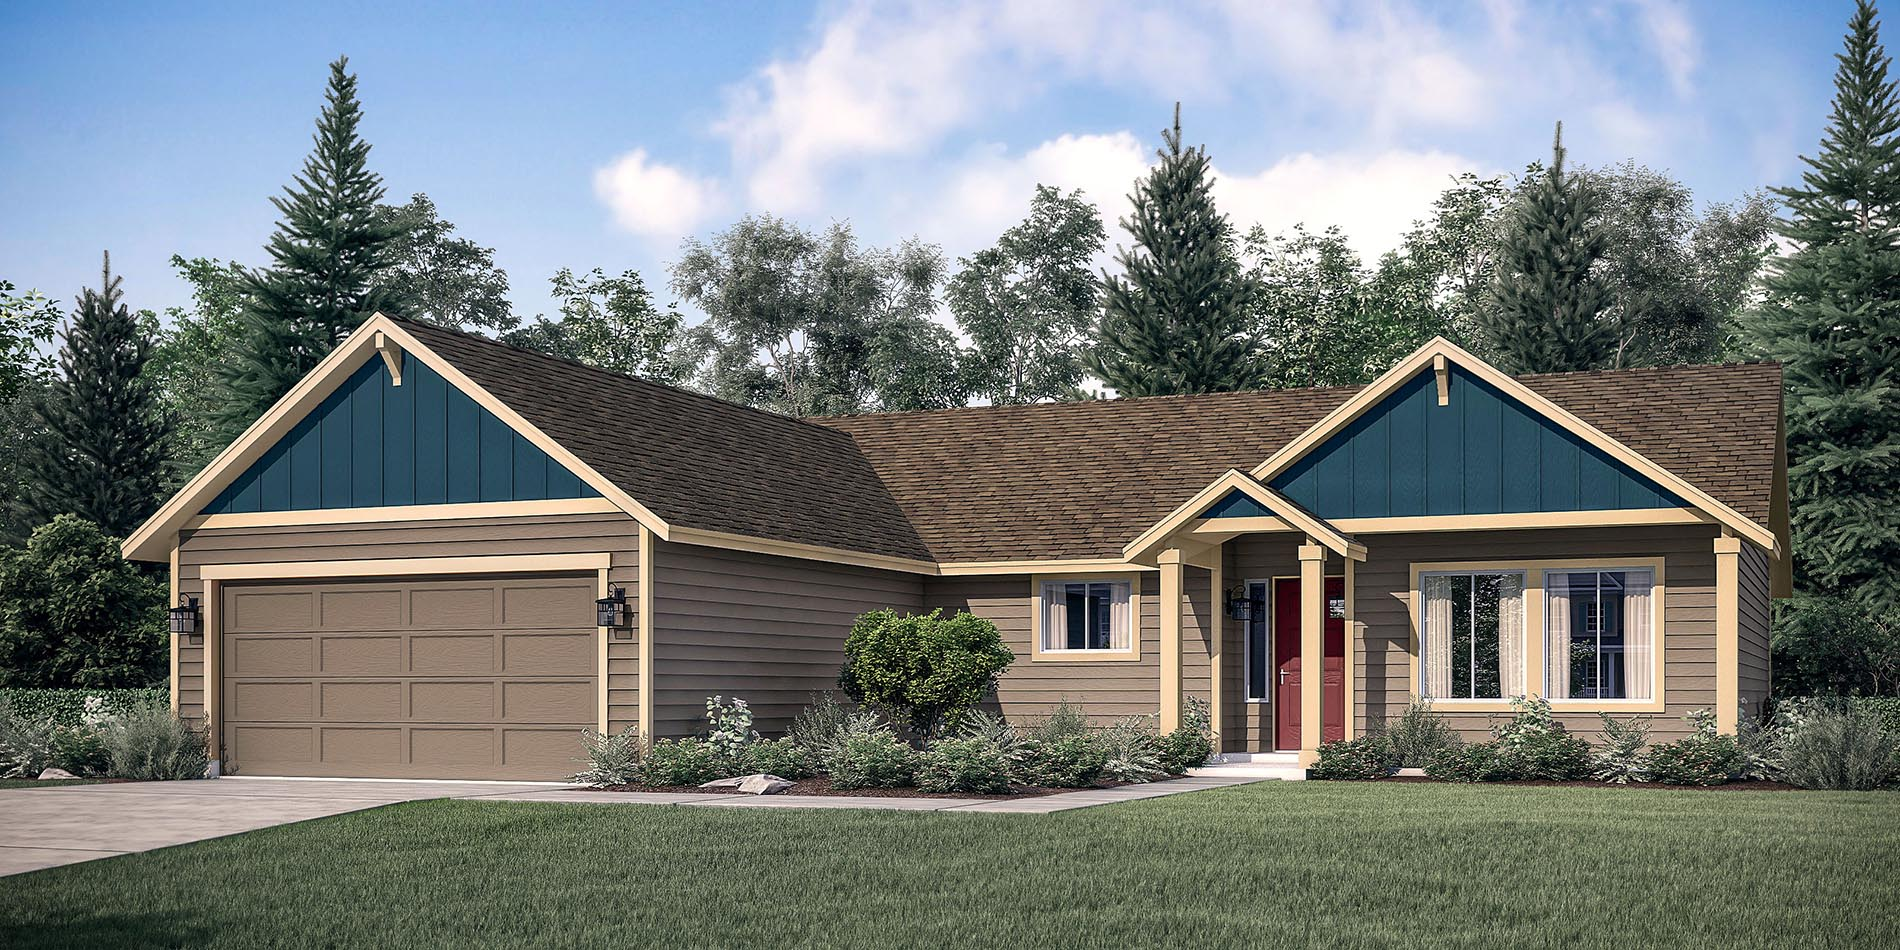 Adair homes floor plans prices home design for Custom home plans cost